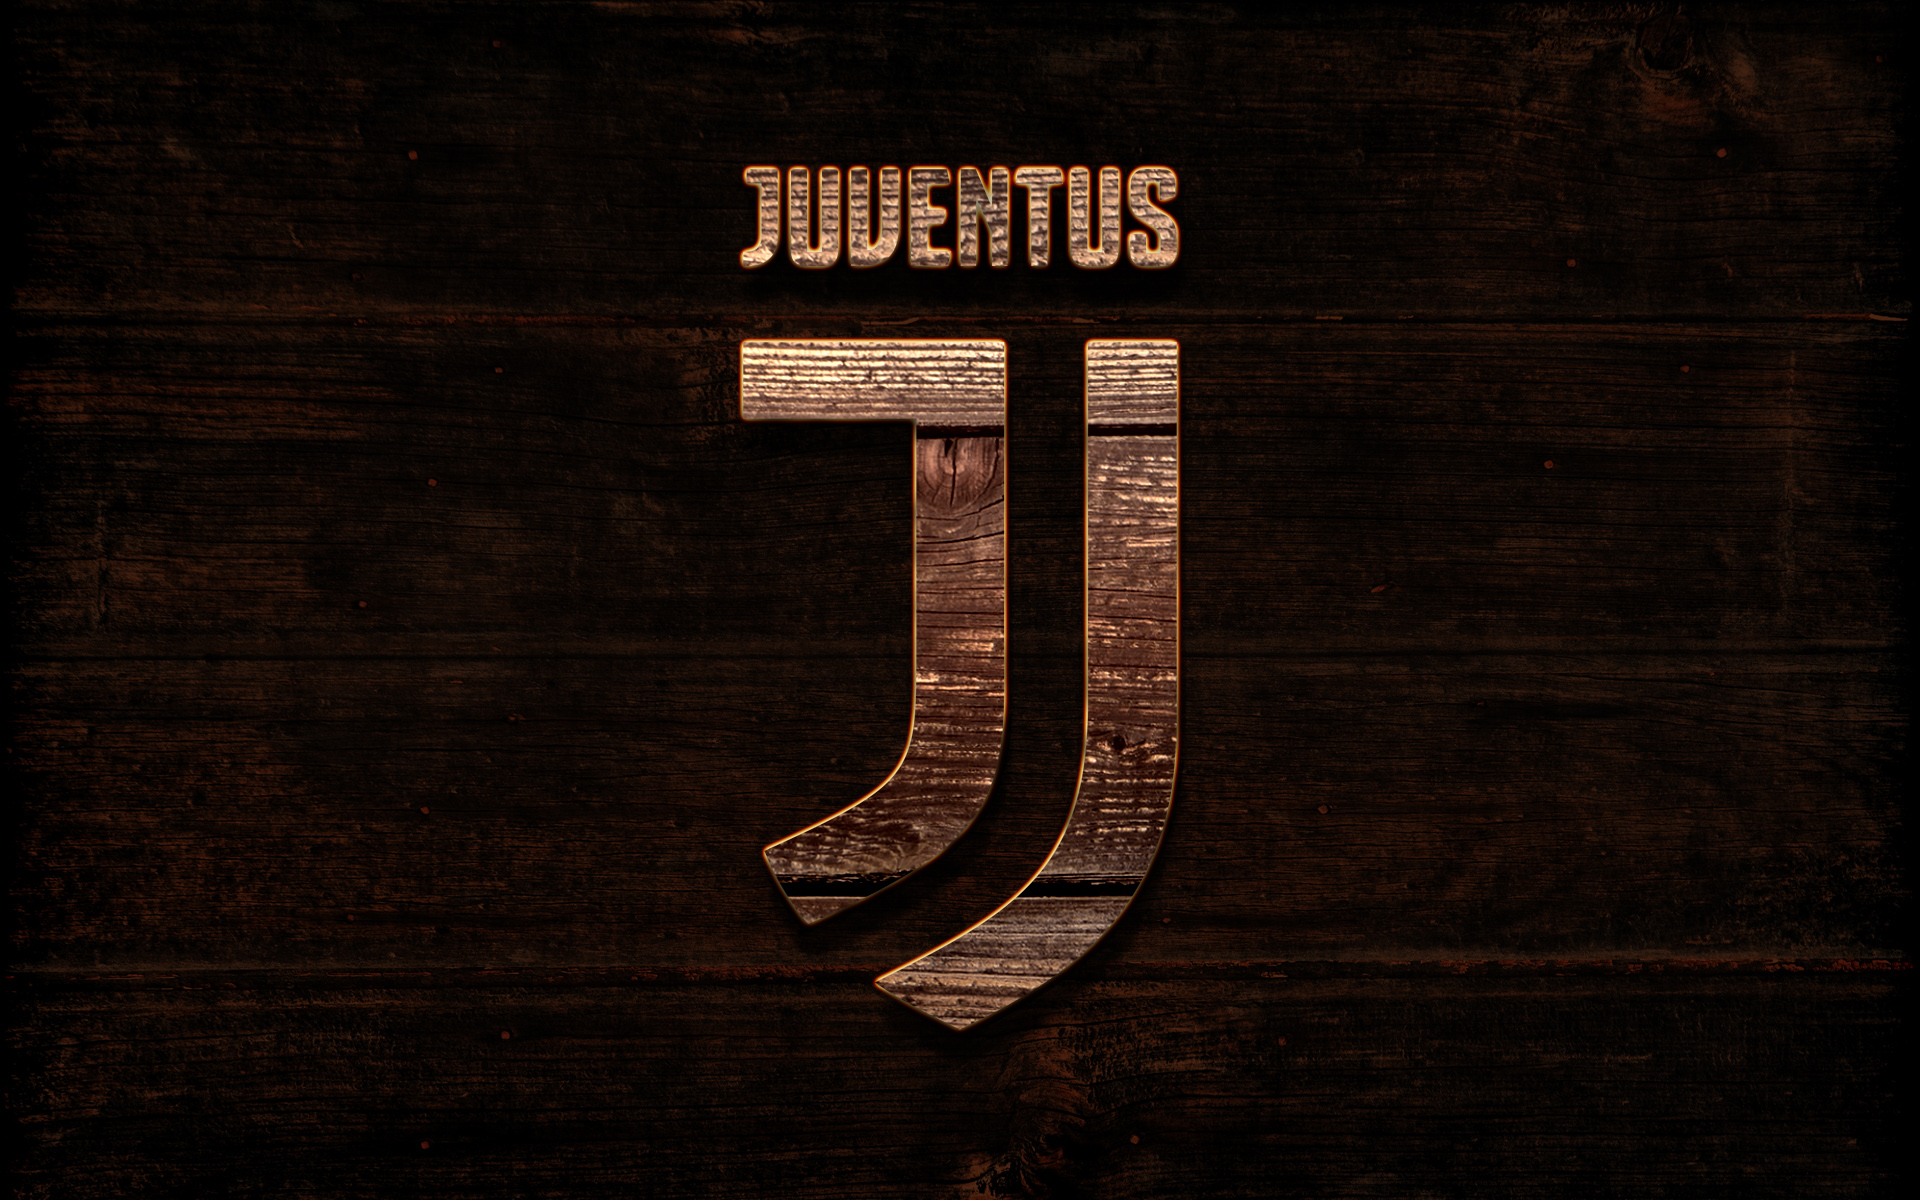 juventus logo hd wallpaper background image 1920x1200 id 976391 wallpaper abyss juventus logo hd wallpaper background